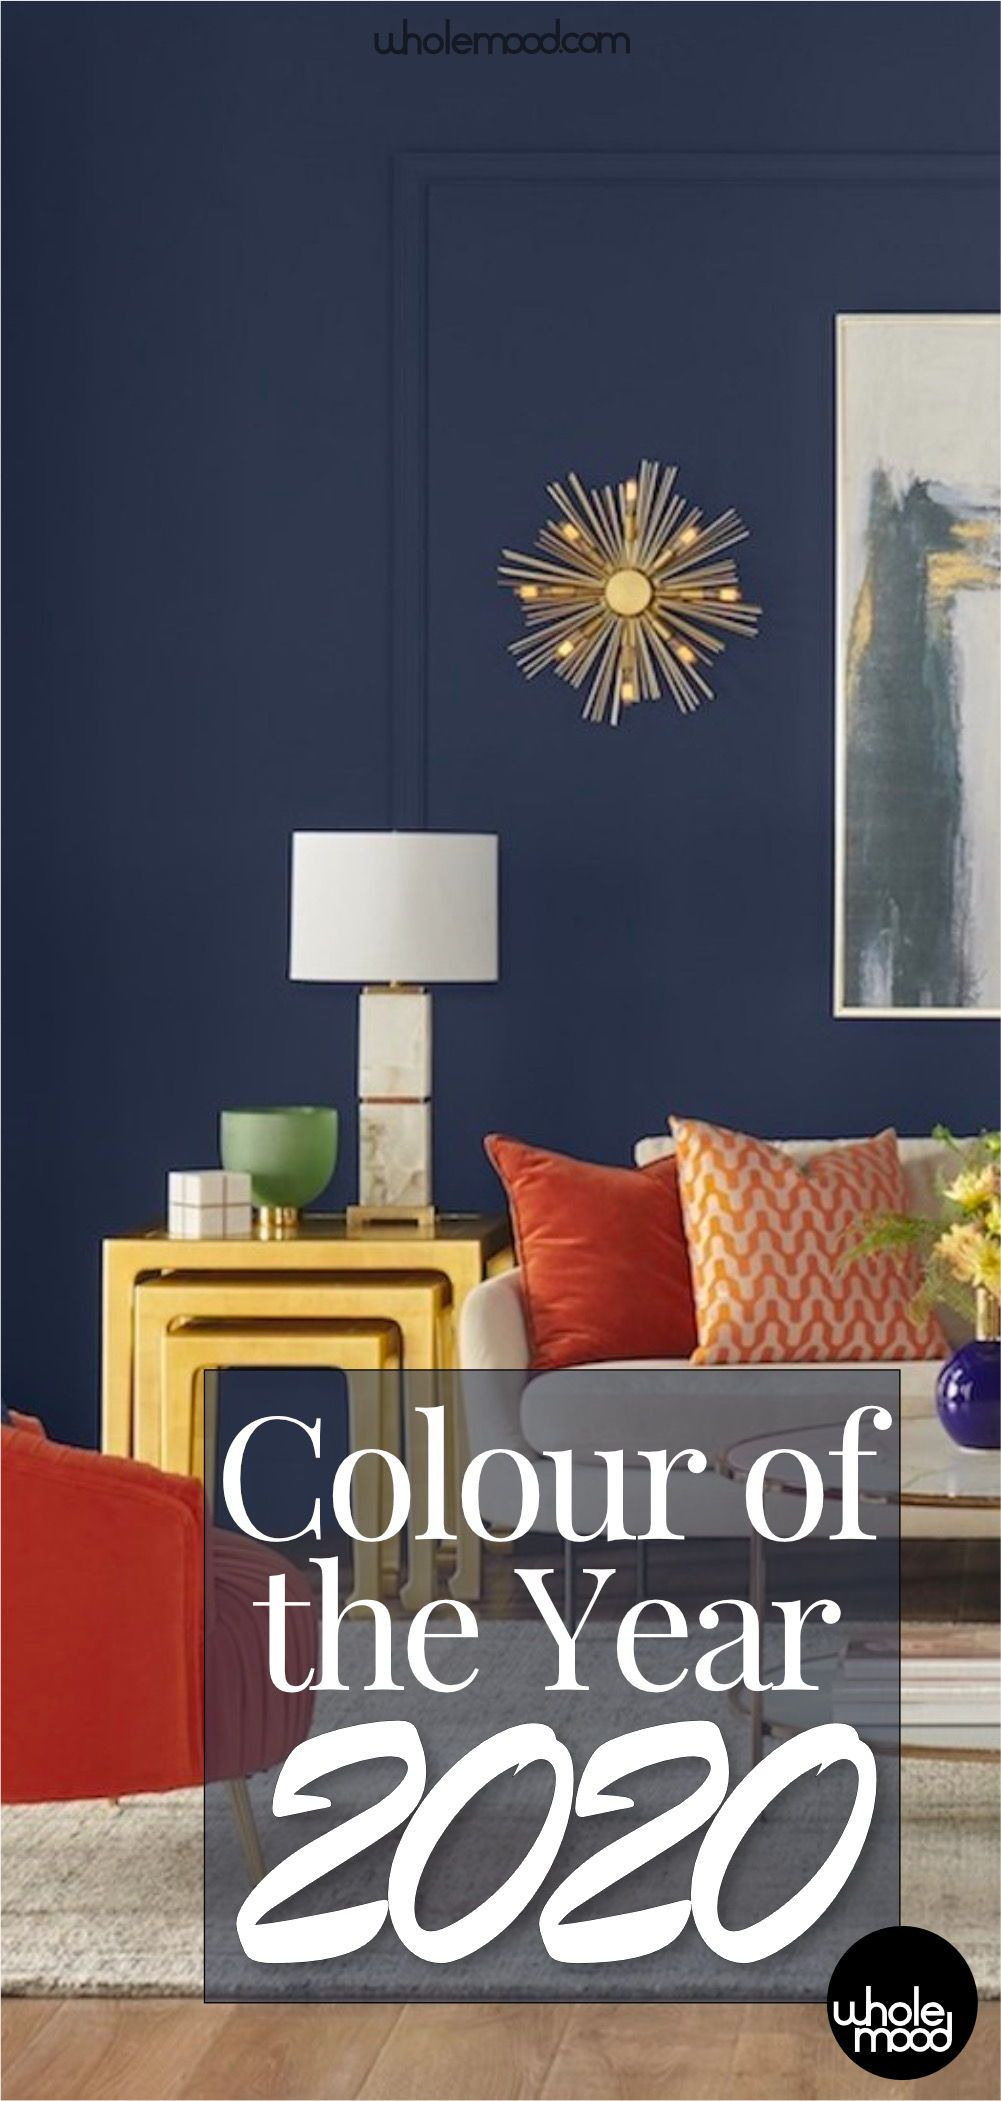 2020 colour of the year new decade cool new tone on sherwin williams 2021 color trends id=36078